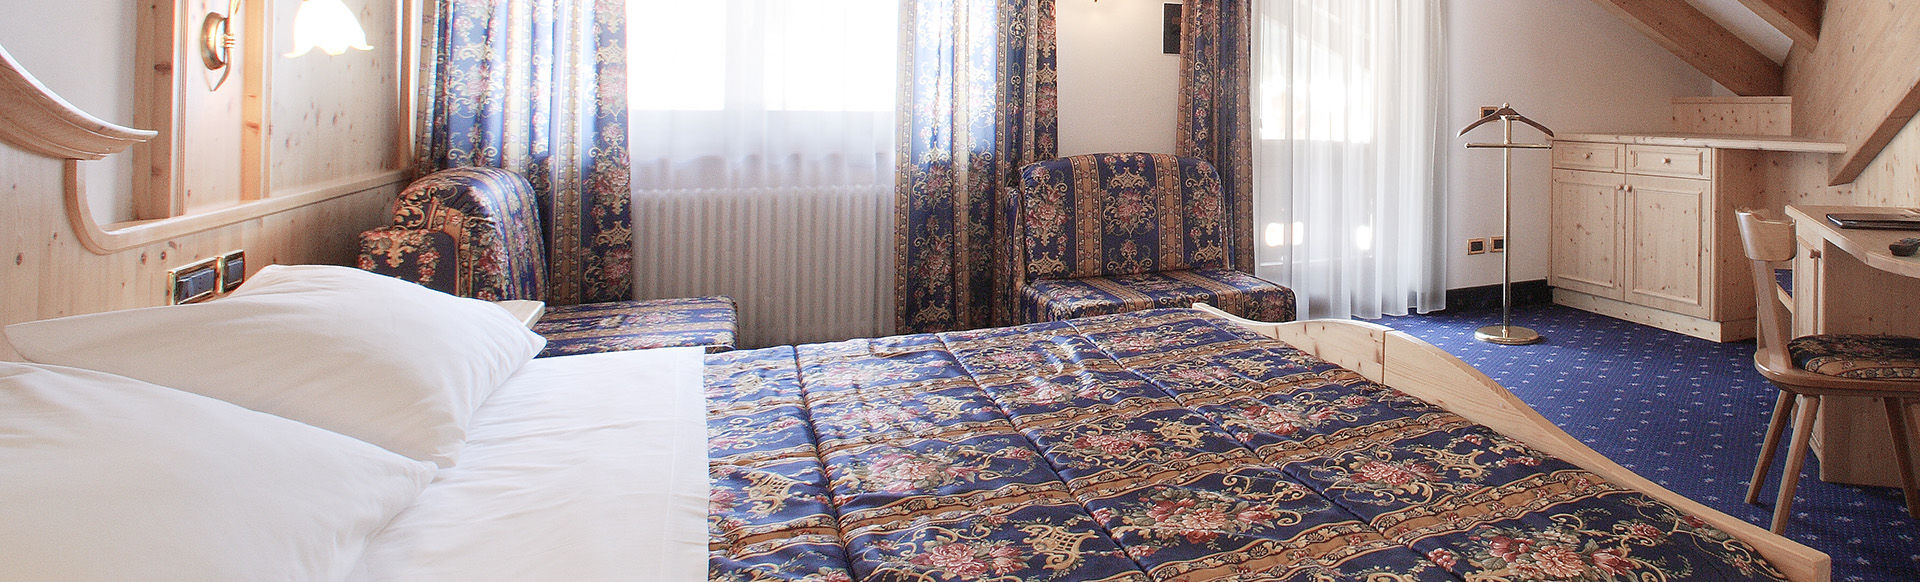 Junior Suite Hotel Alpi